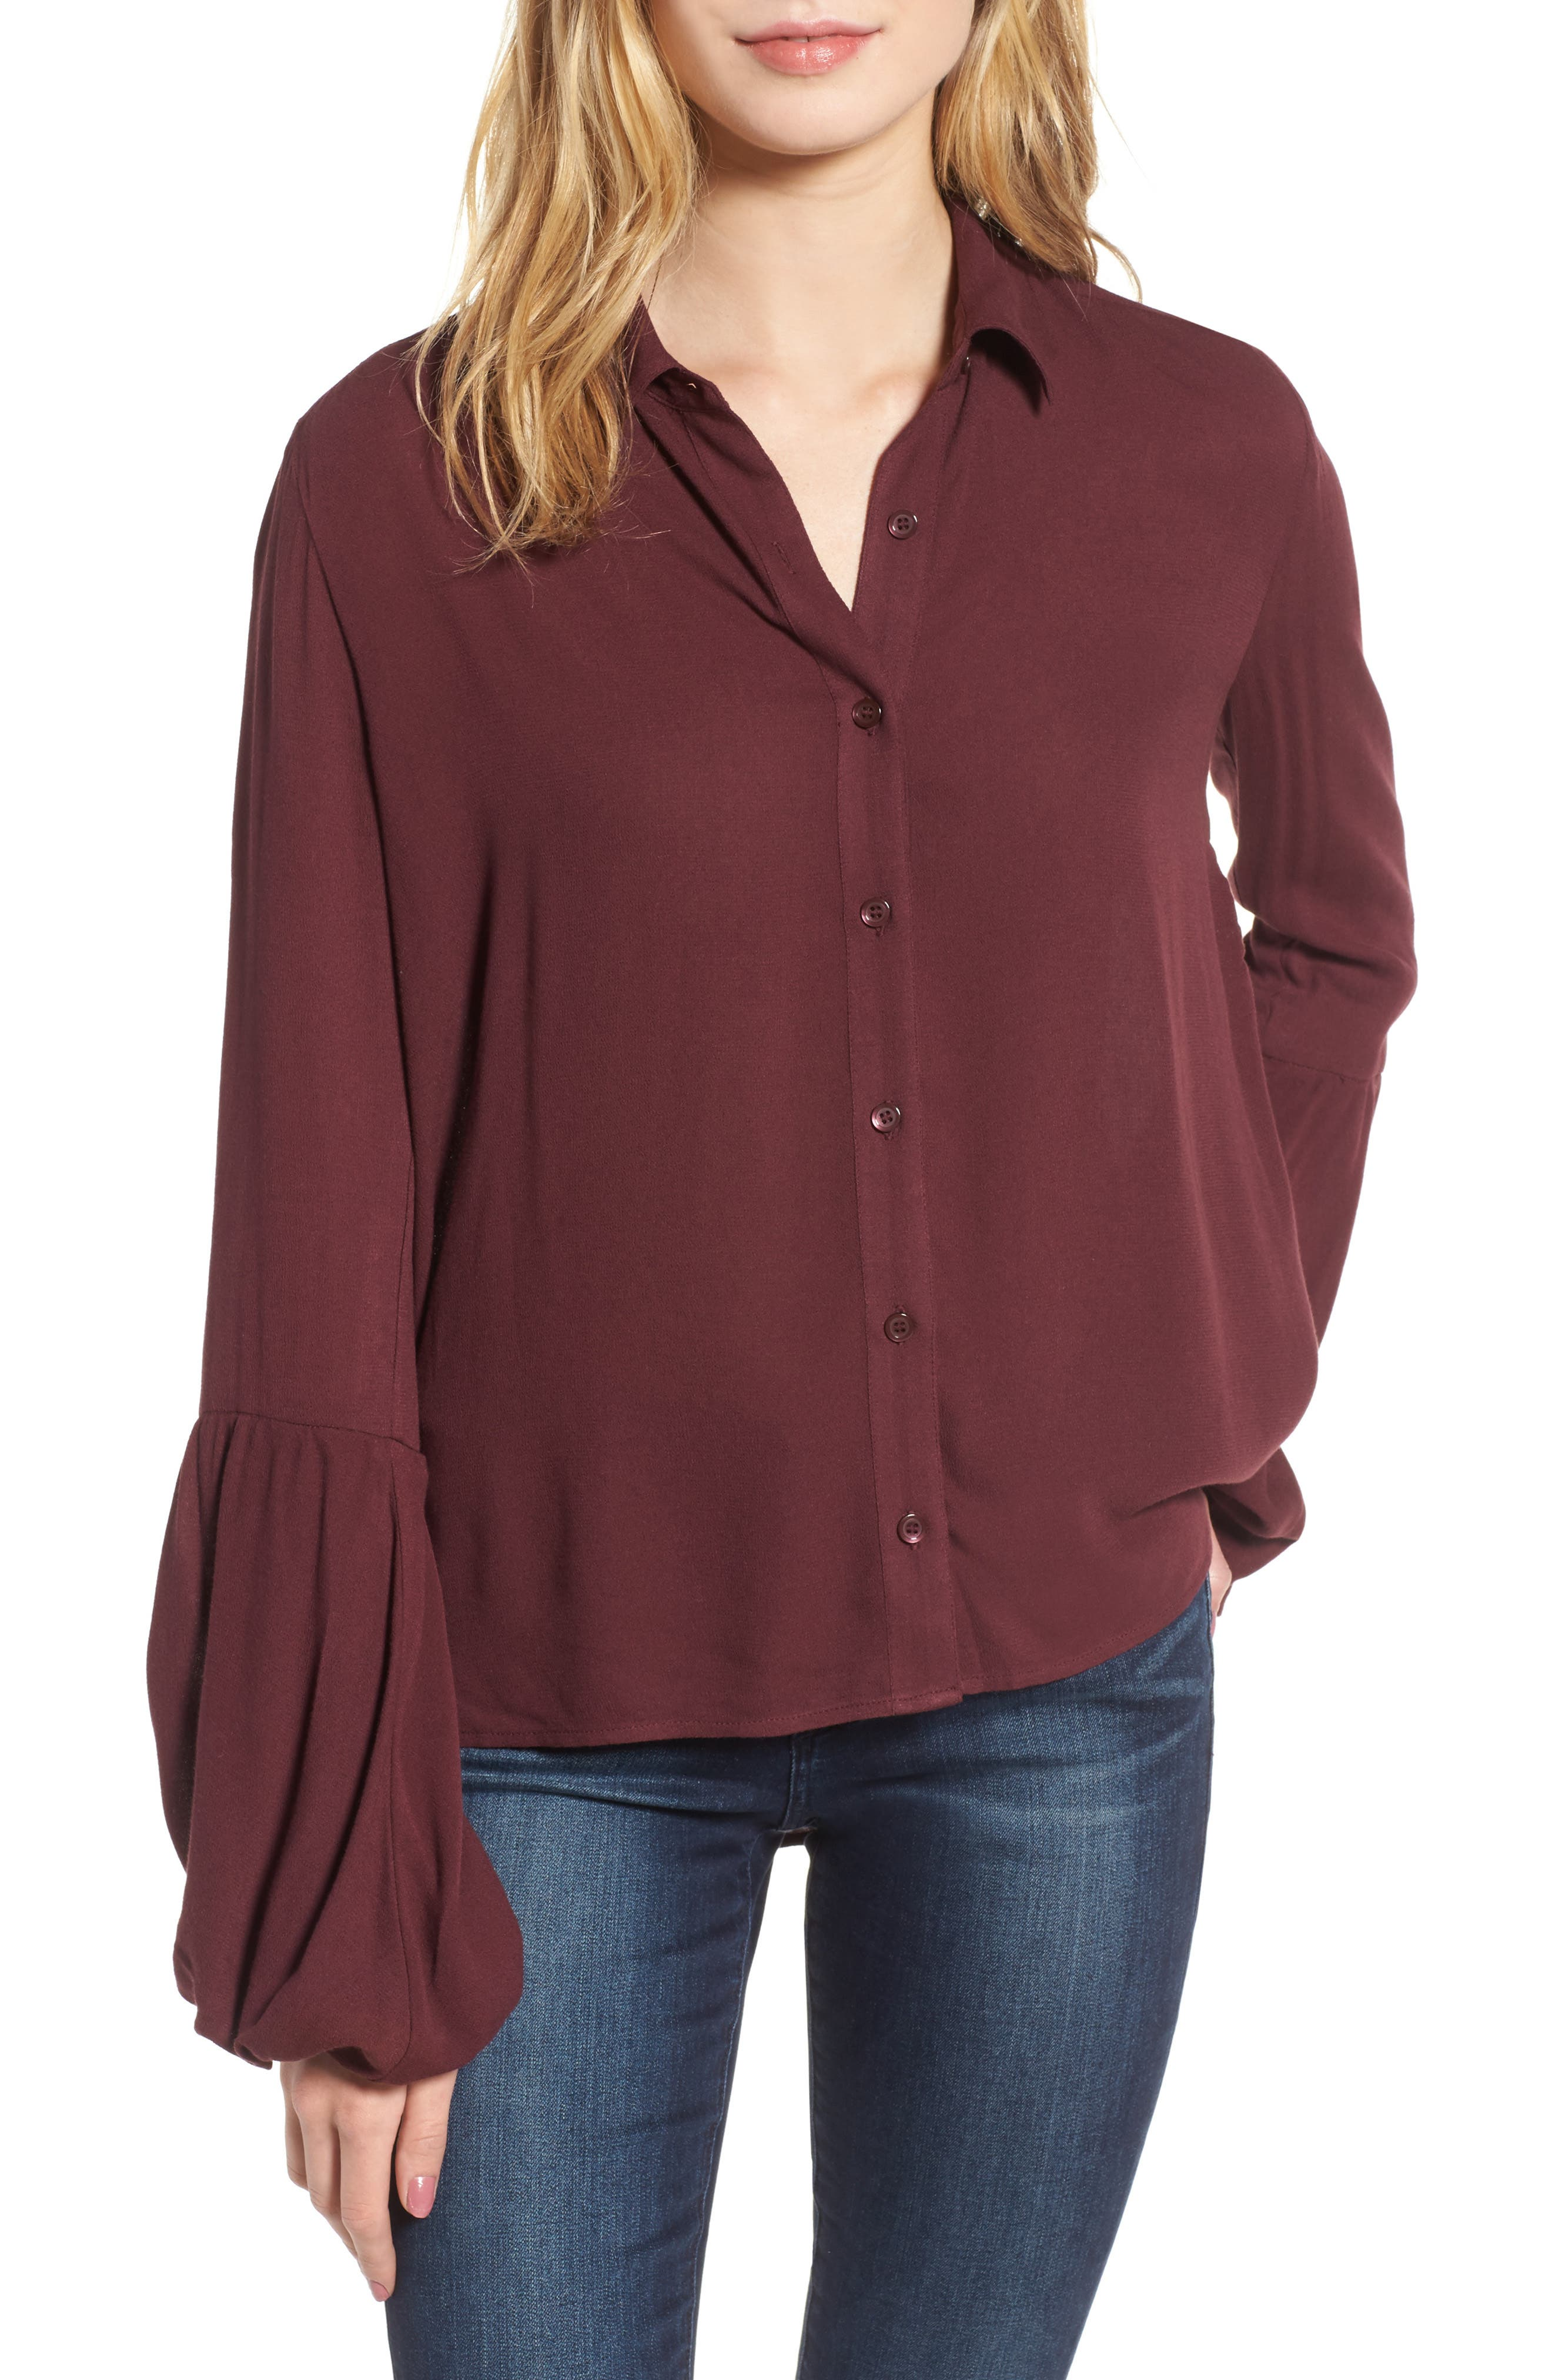 Balloon Sleeve Top,                             Main thumbnail 1, color,                             Burgundy Royale